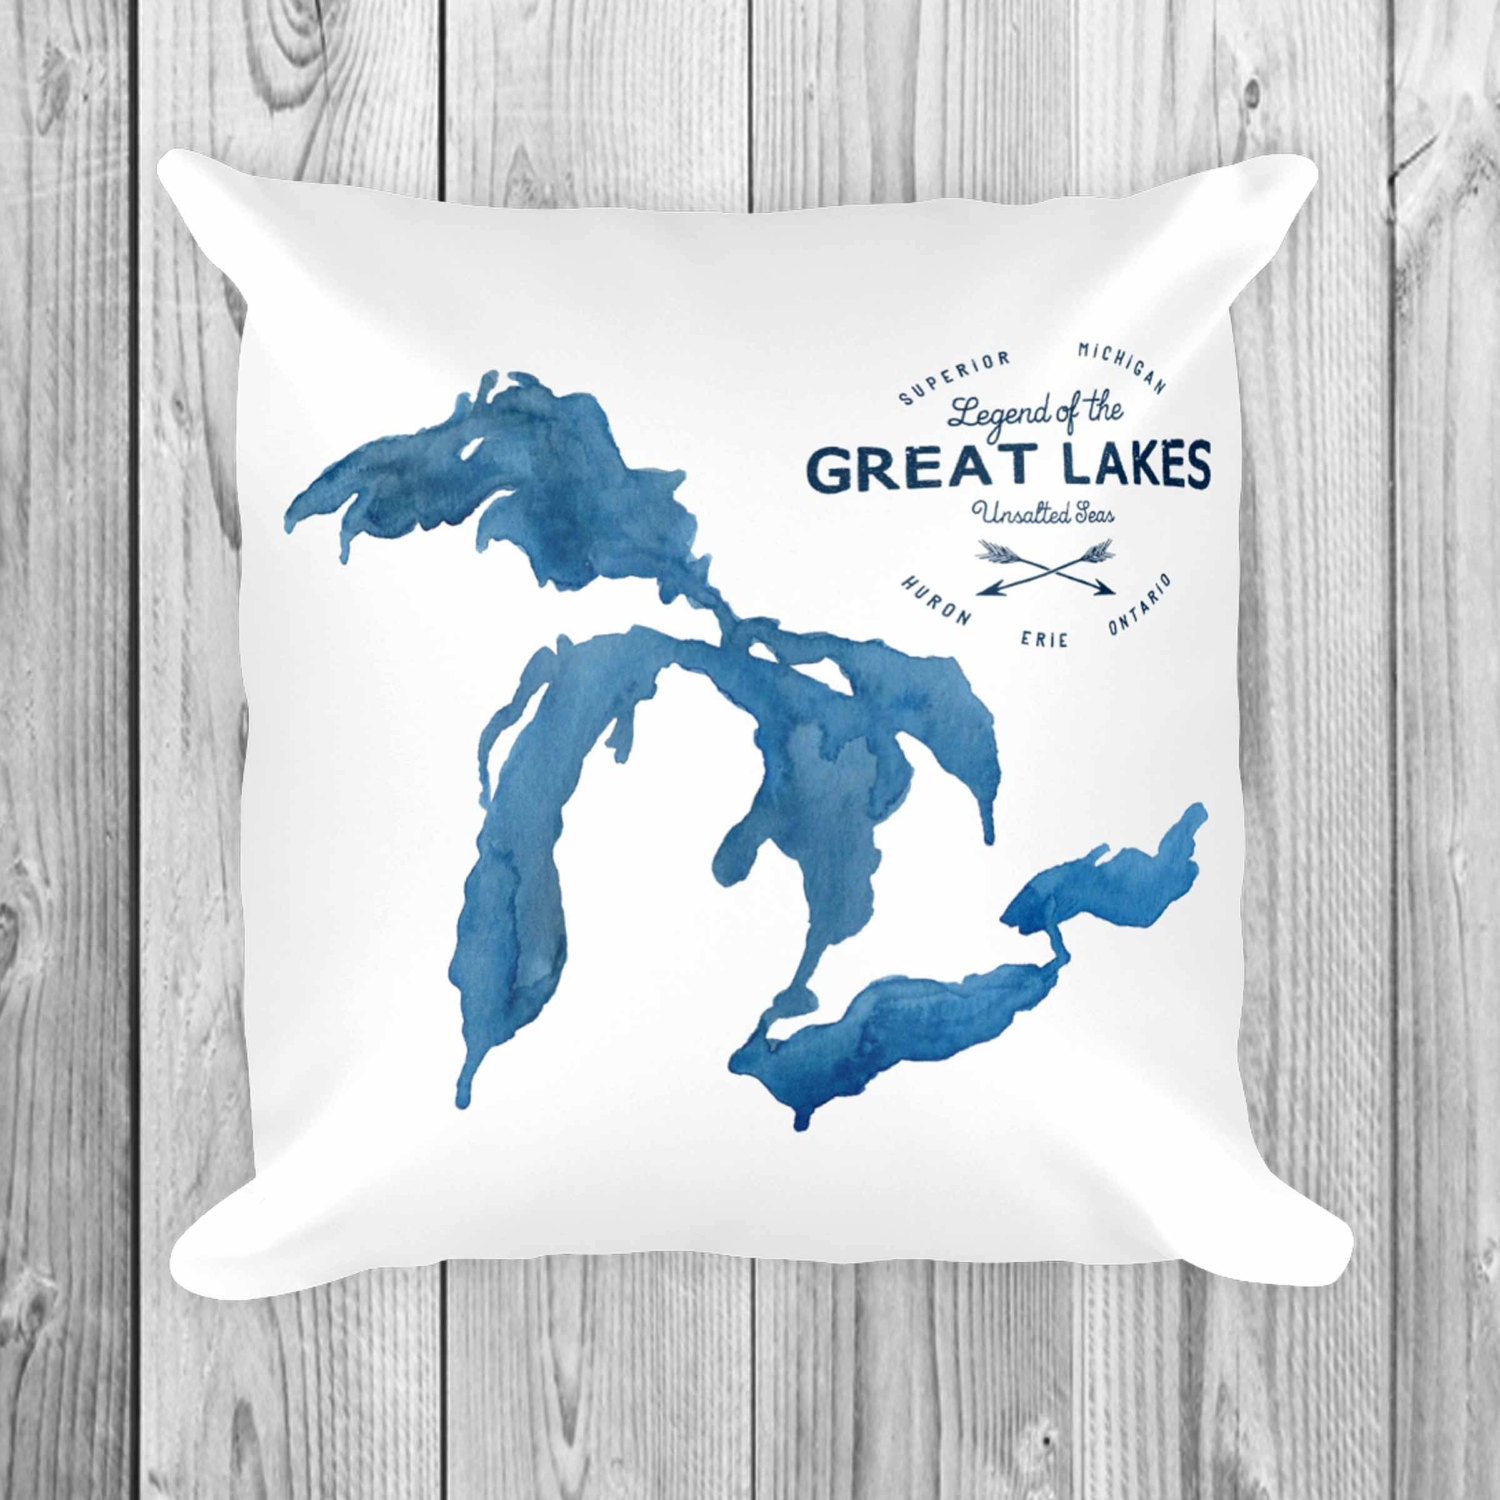 Great Lakes Unsalted Pillow Throw Pillow Home Decor